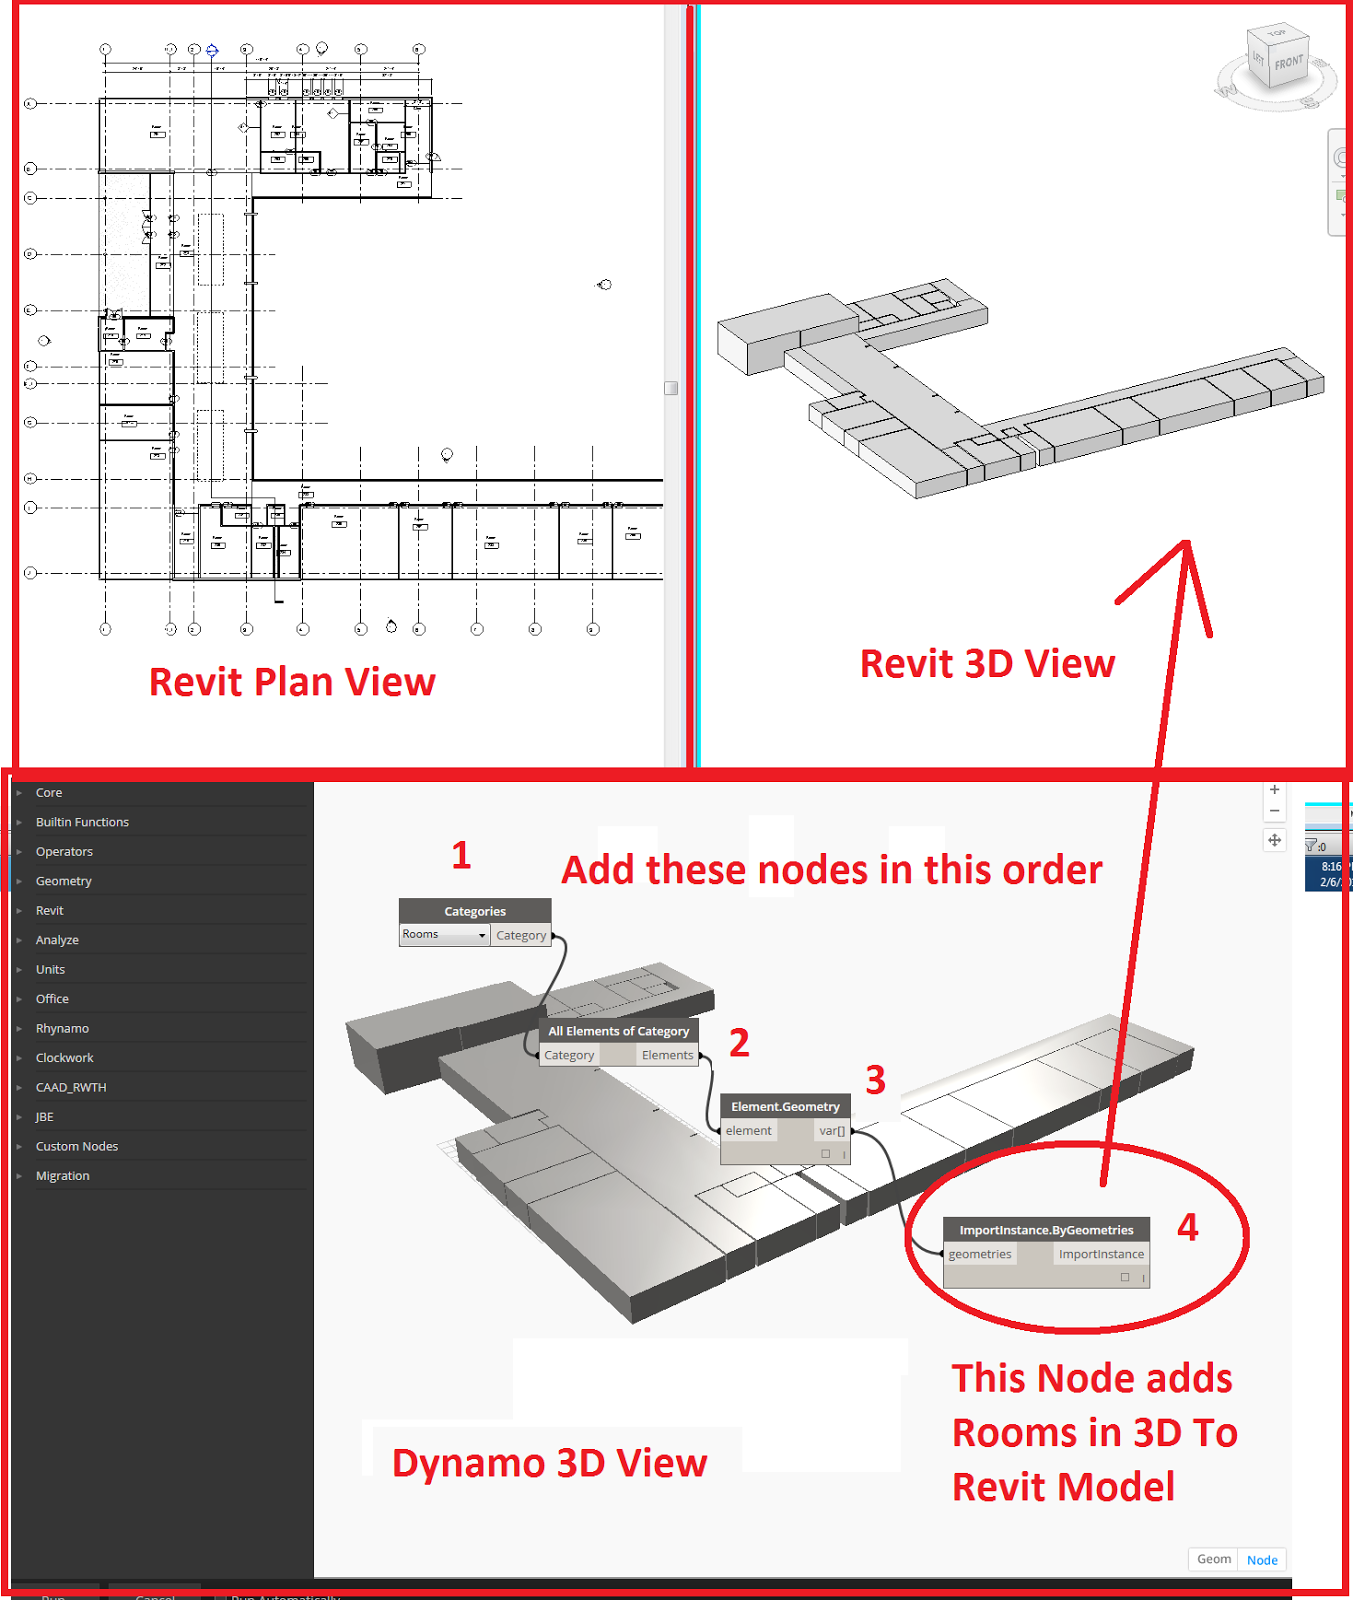 The Simply Complex Blog: Want 3D Rooms In Revit? Use DynamoBIM